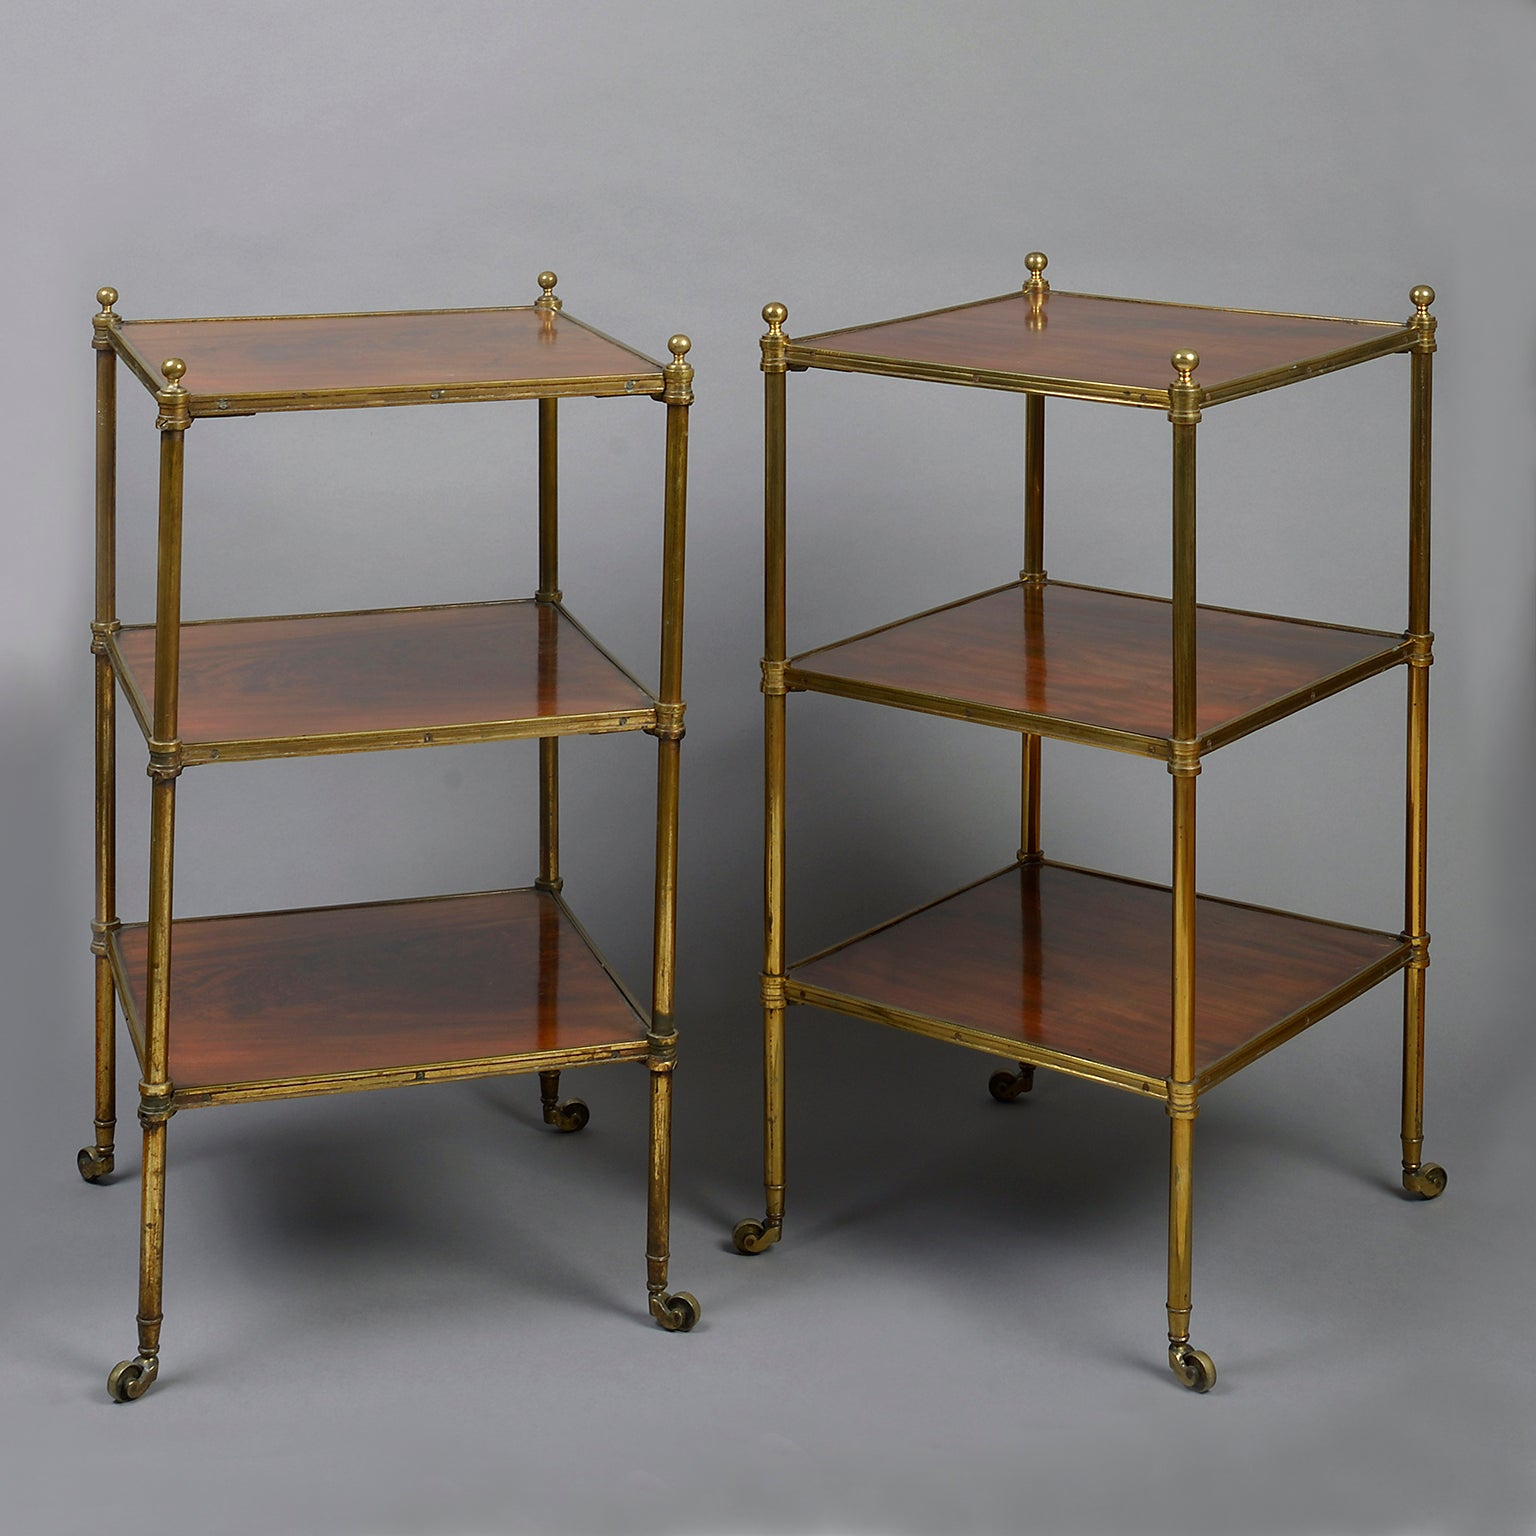 A Matched Pair of 3-tier Etageres